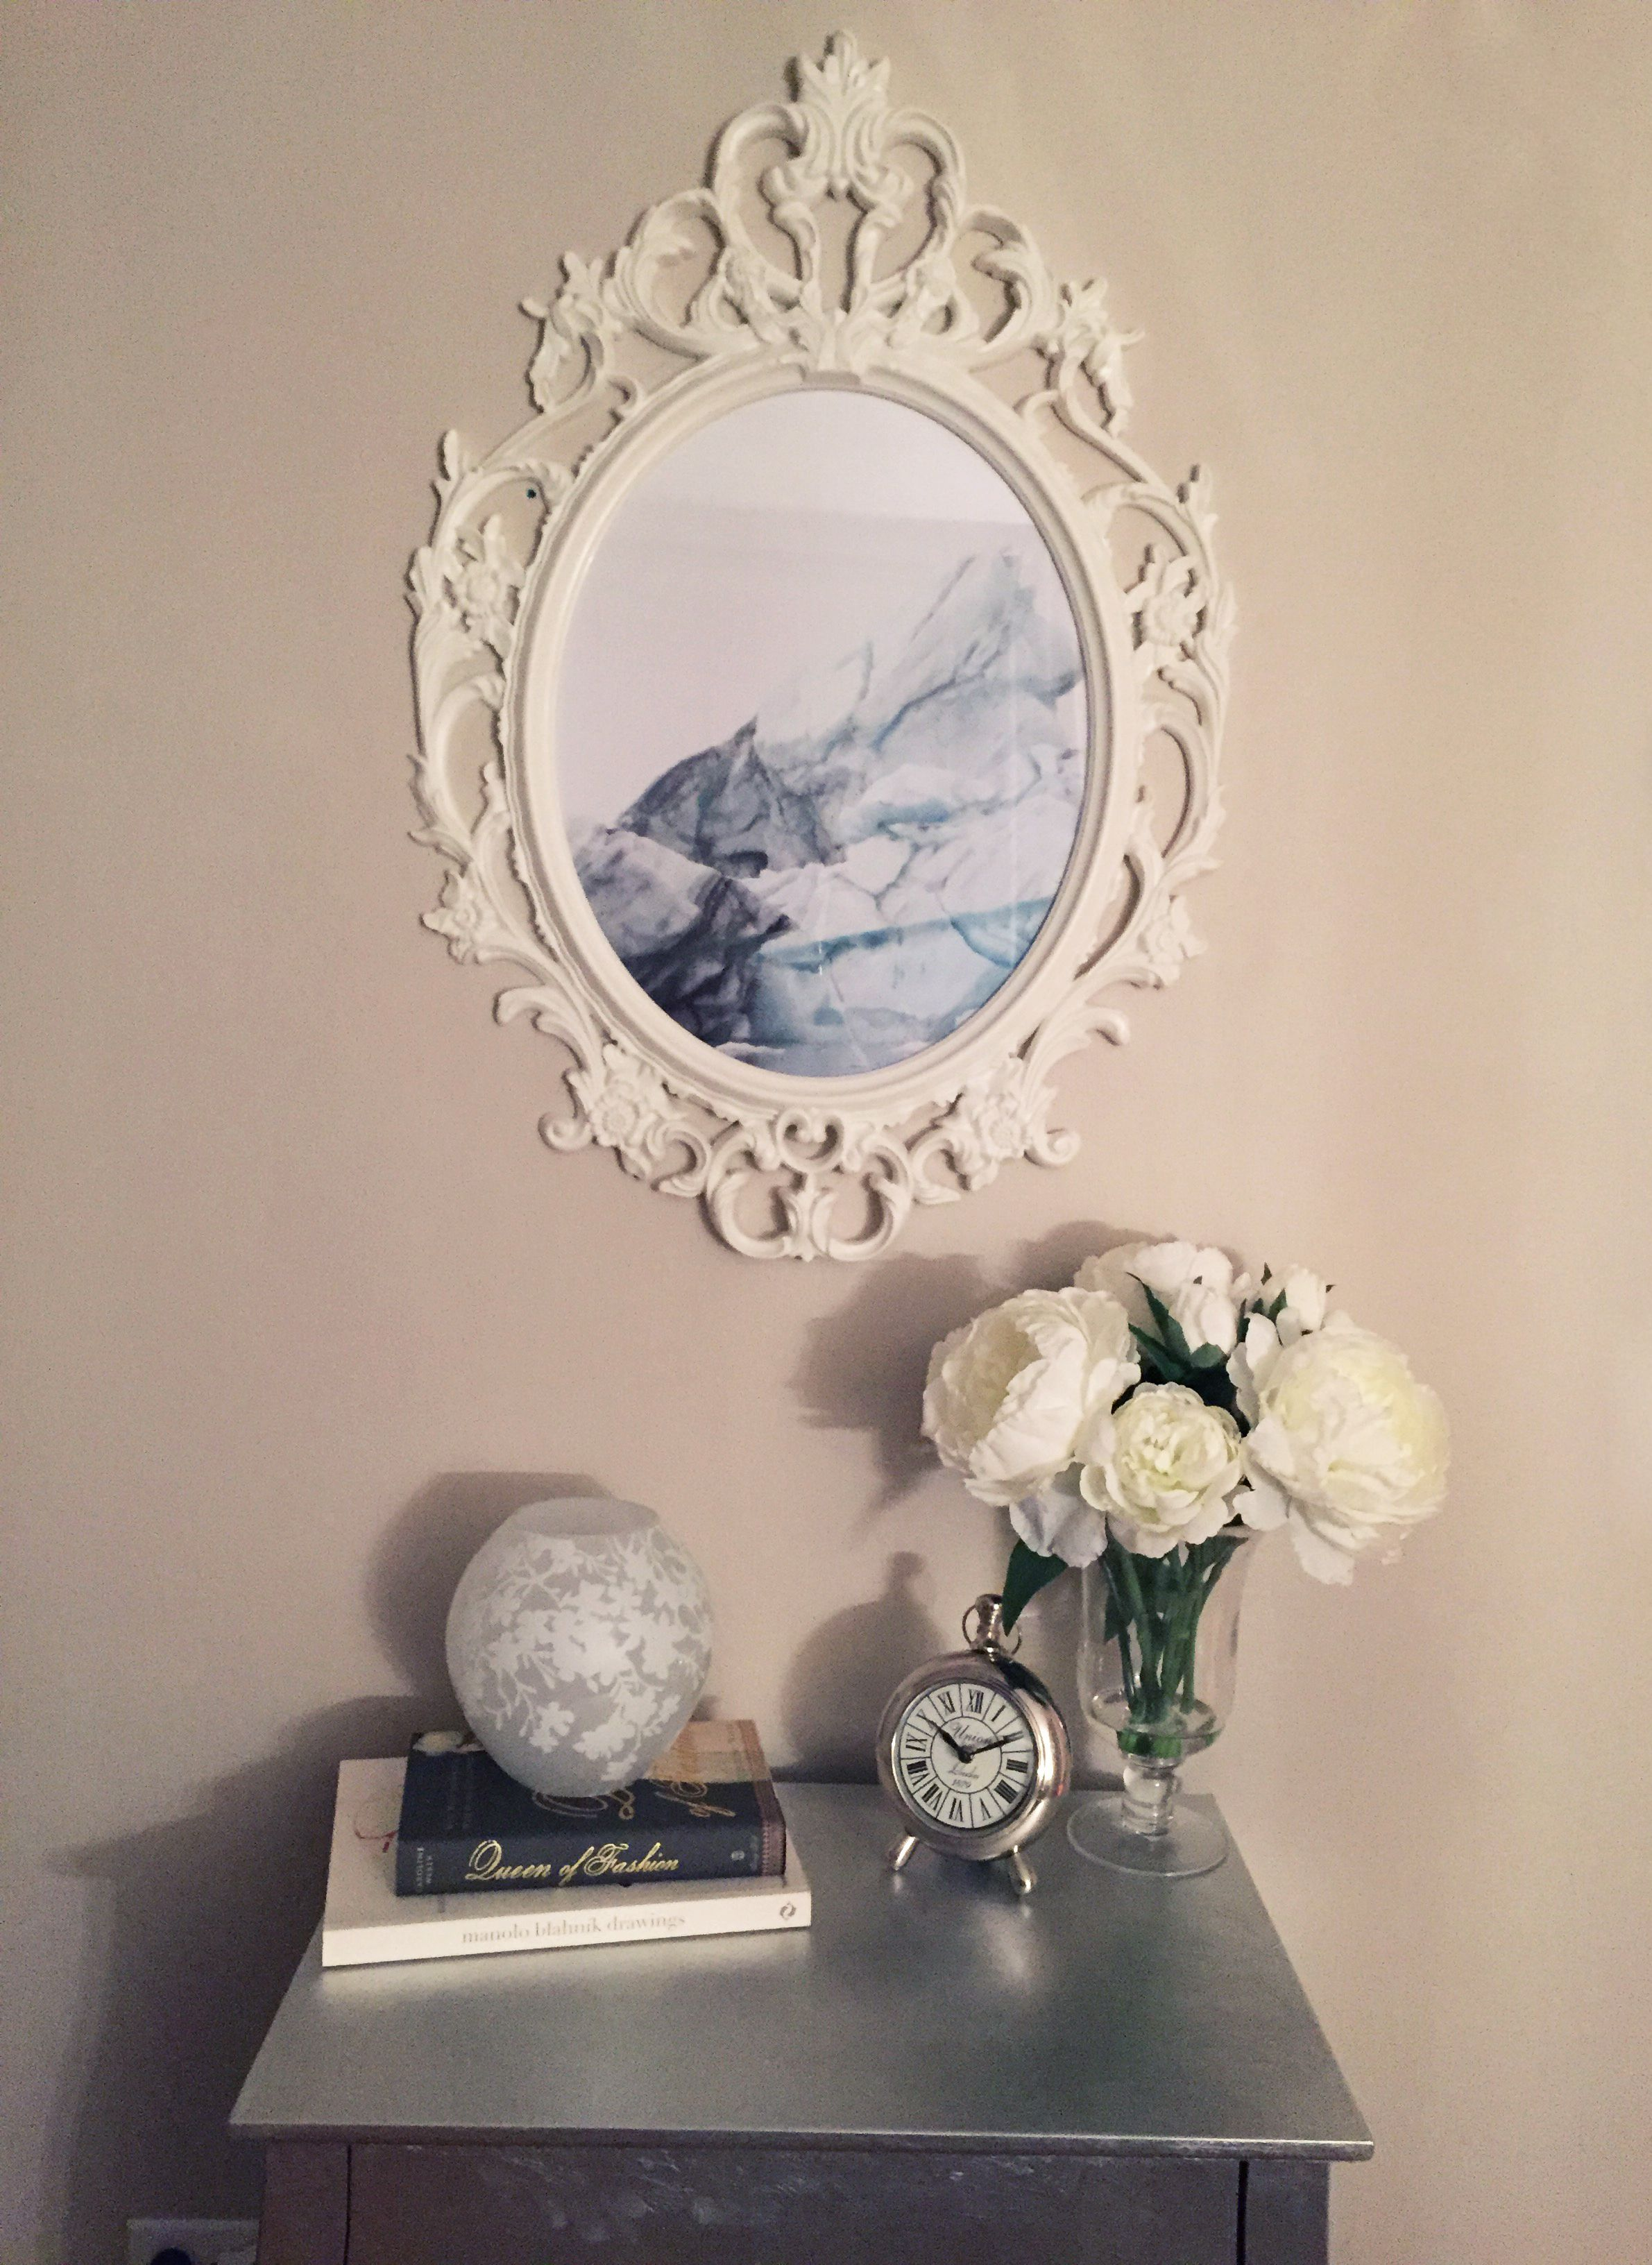 Ikea Ung Drill frame, Ikea cherry blossom lamp | My apartment <3 ...